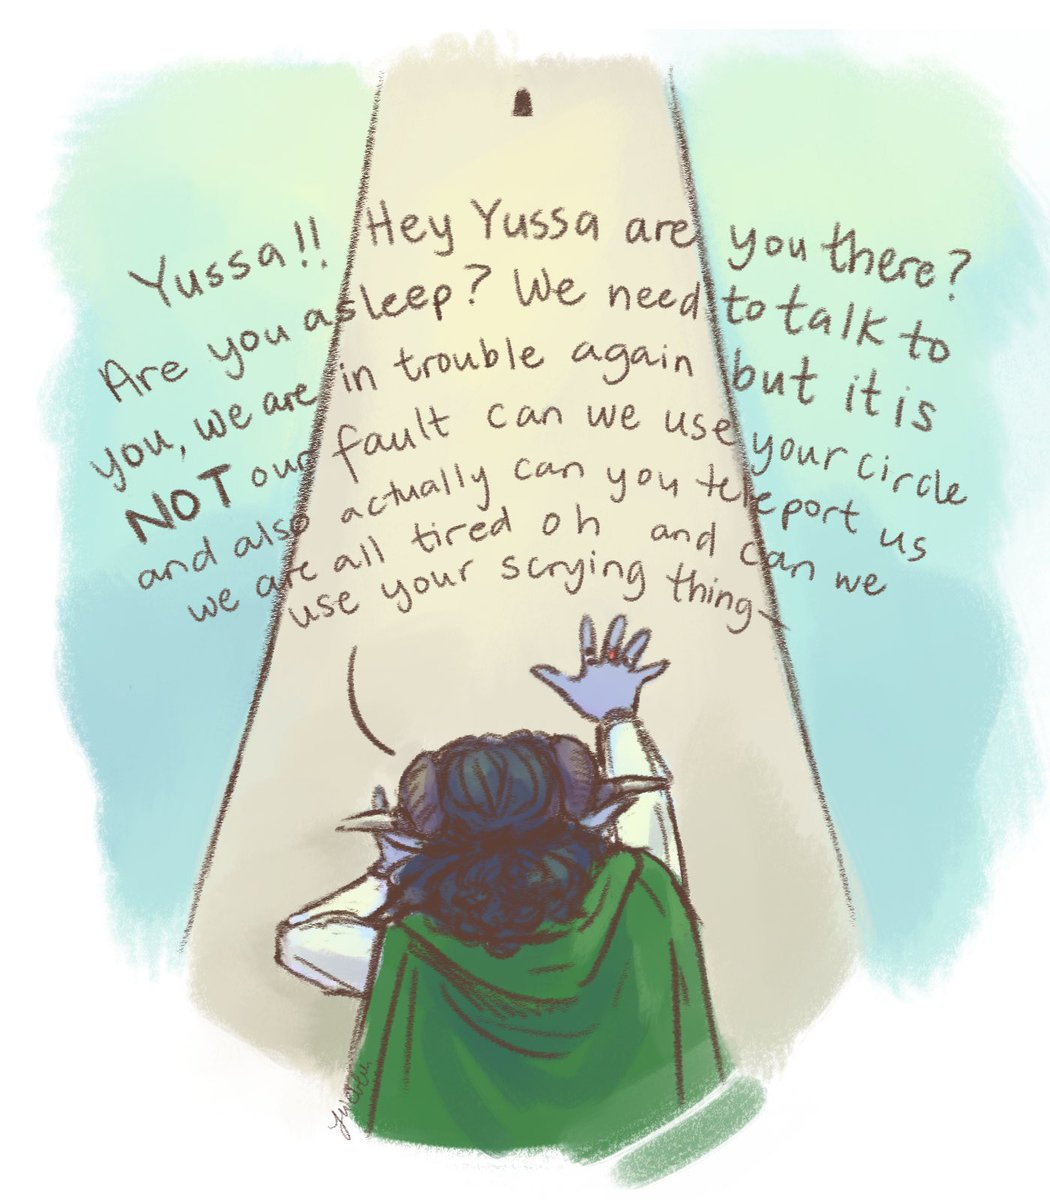 Yussa, the next time the mighty nein get within 100 ft of his tower  #criticalrole #criticalrolefanart #criticalrolespoilers